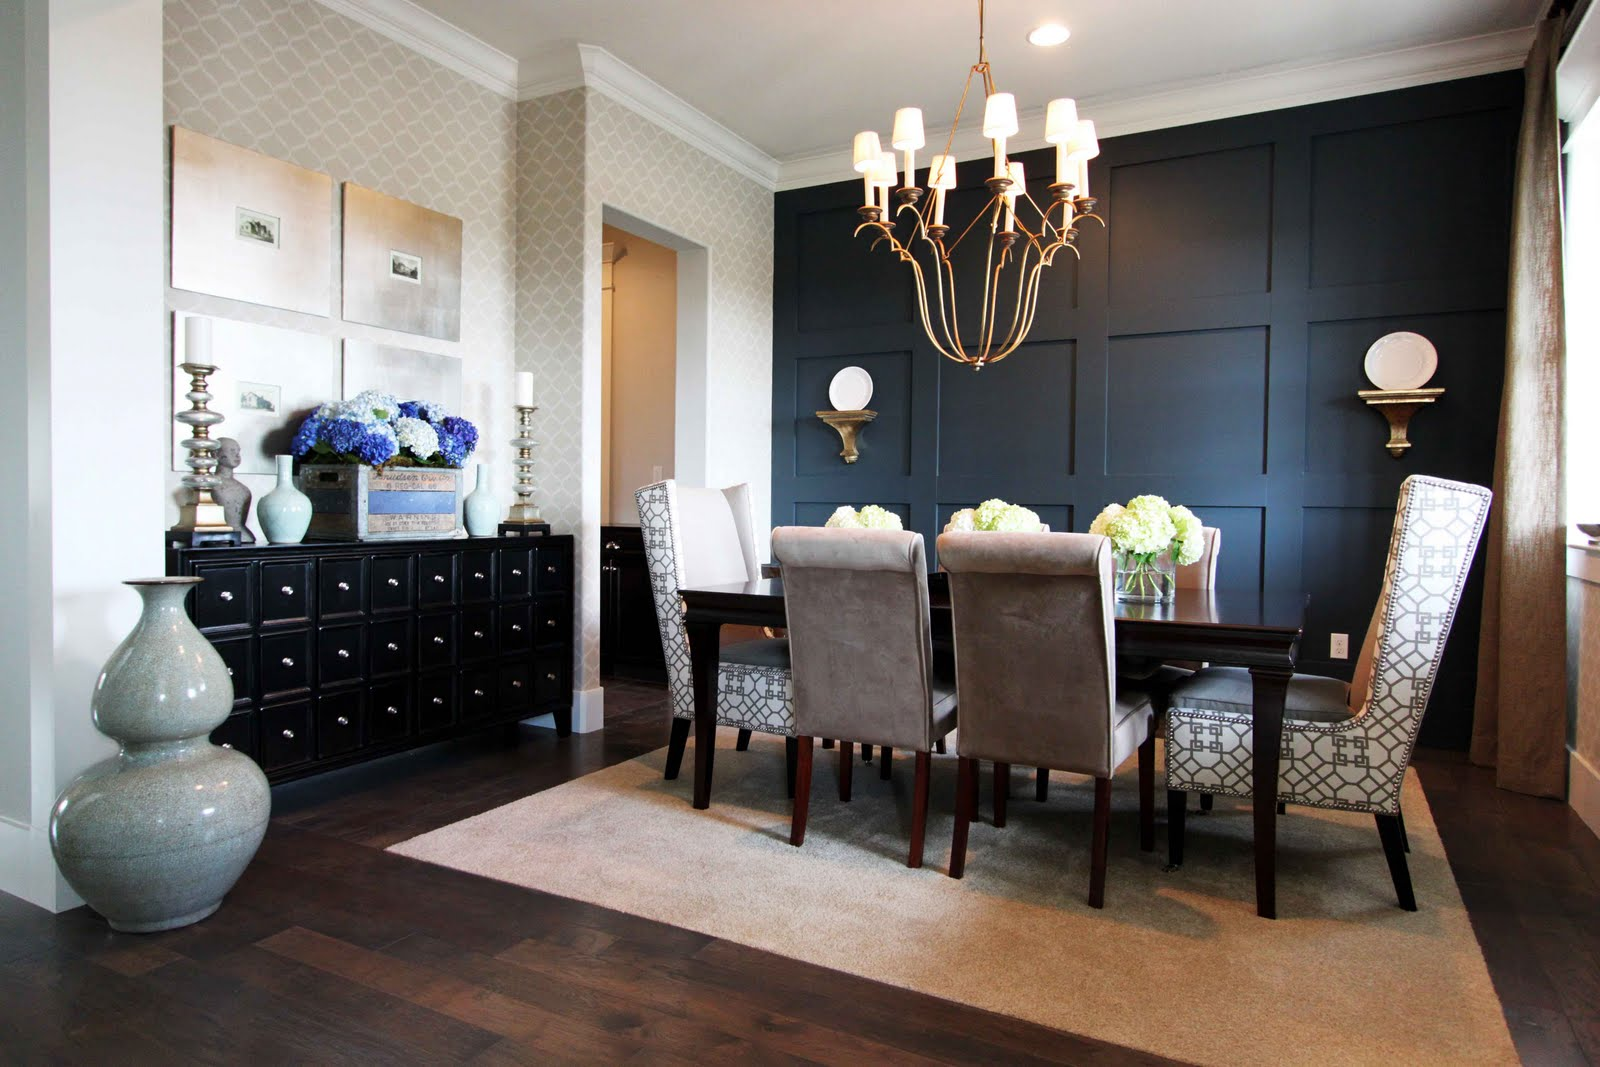 Stiles fischer interior design hgtv showhouse showdown - Living room paint ideas with accent wall ...